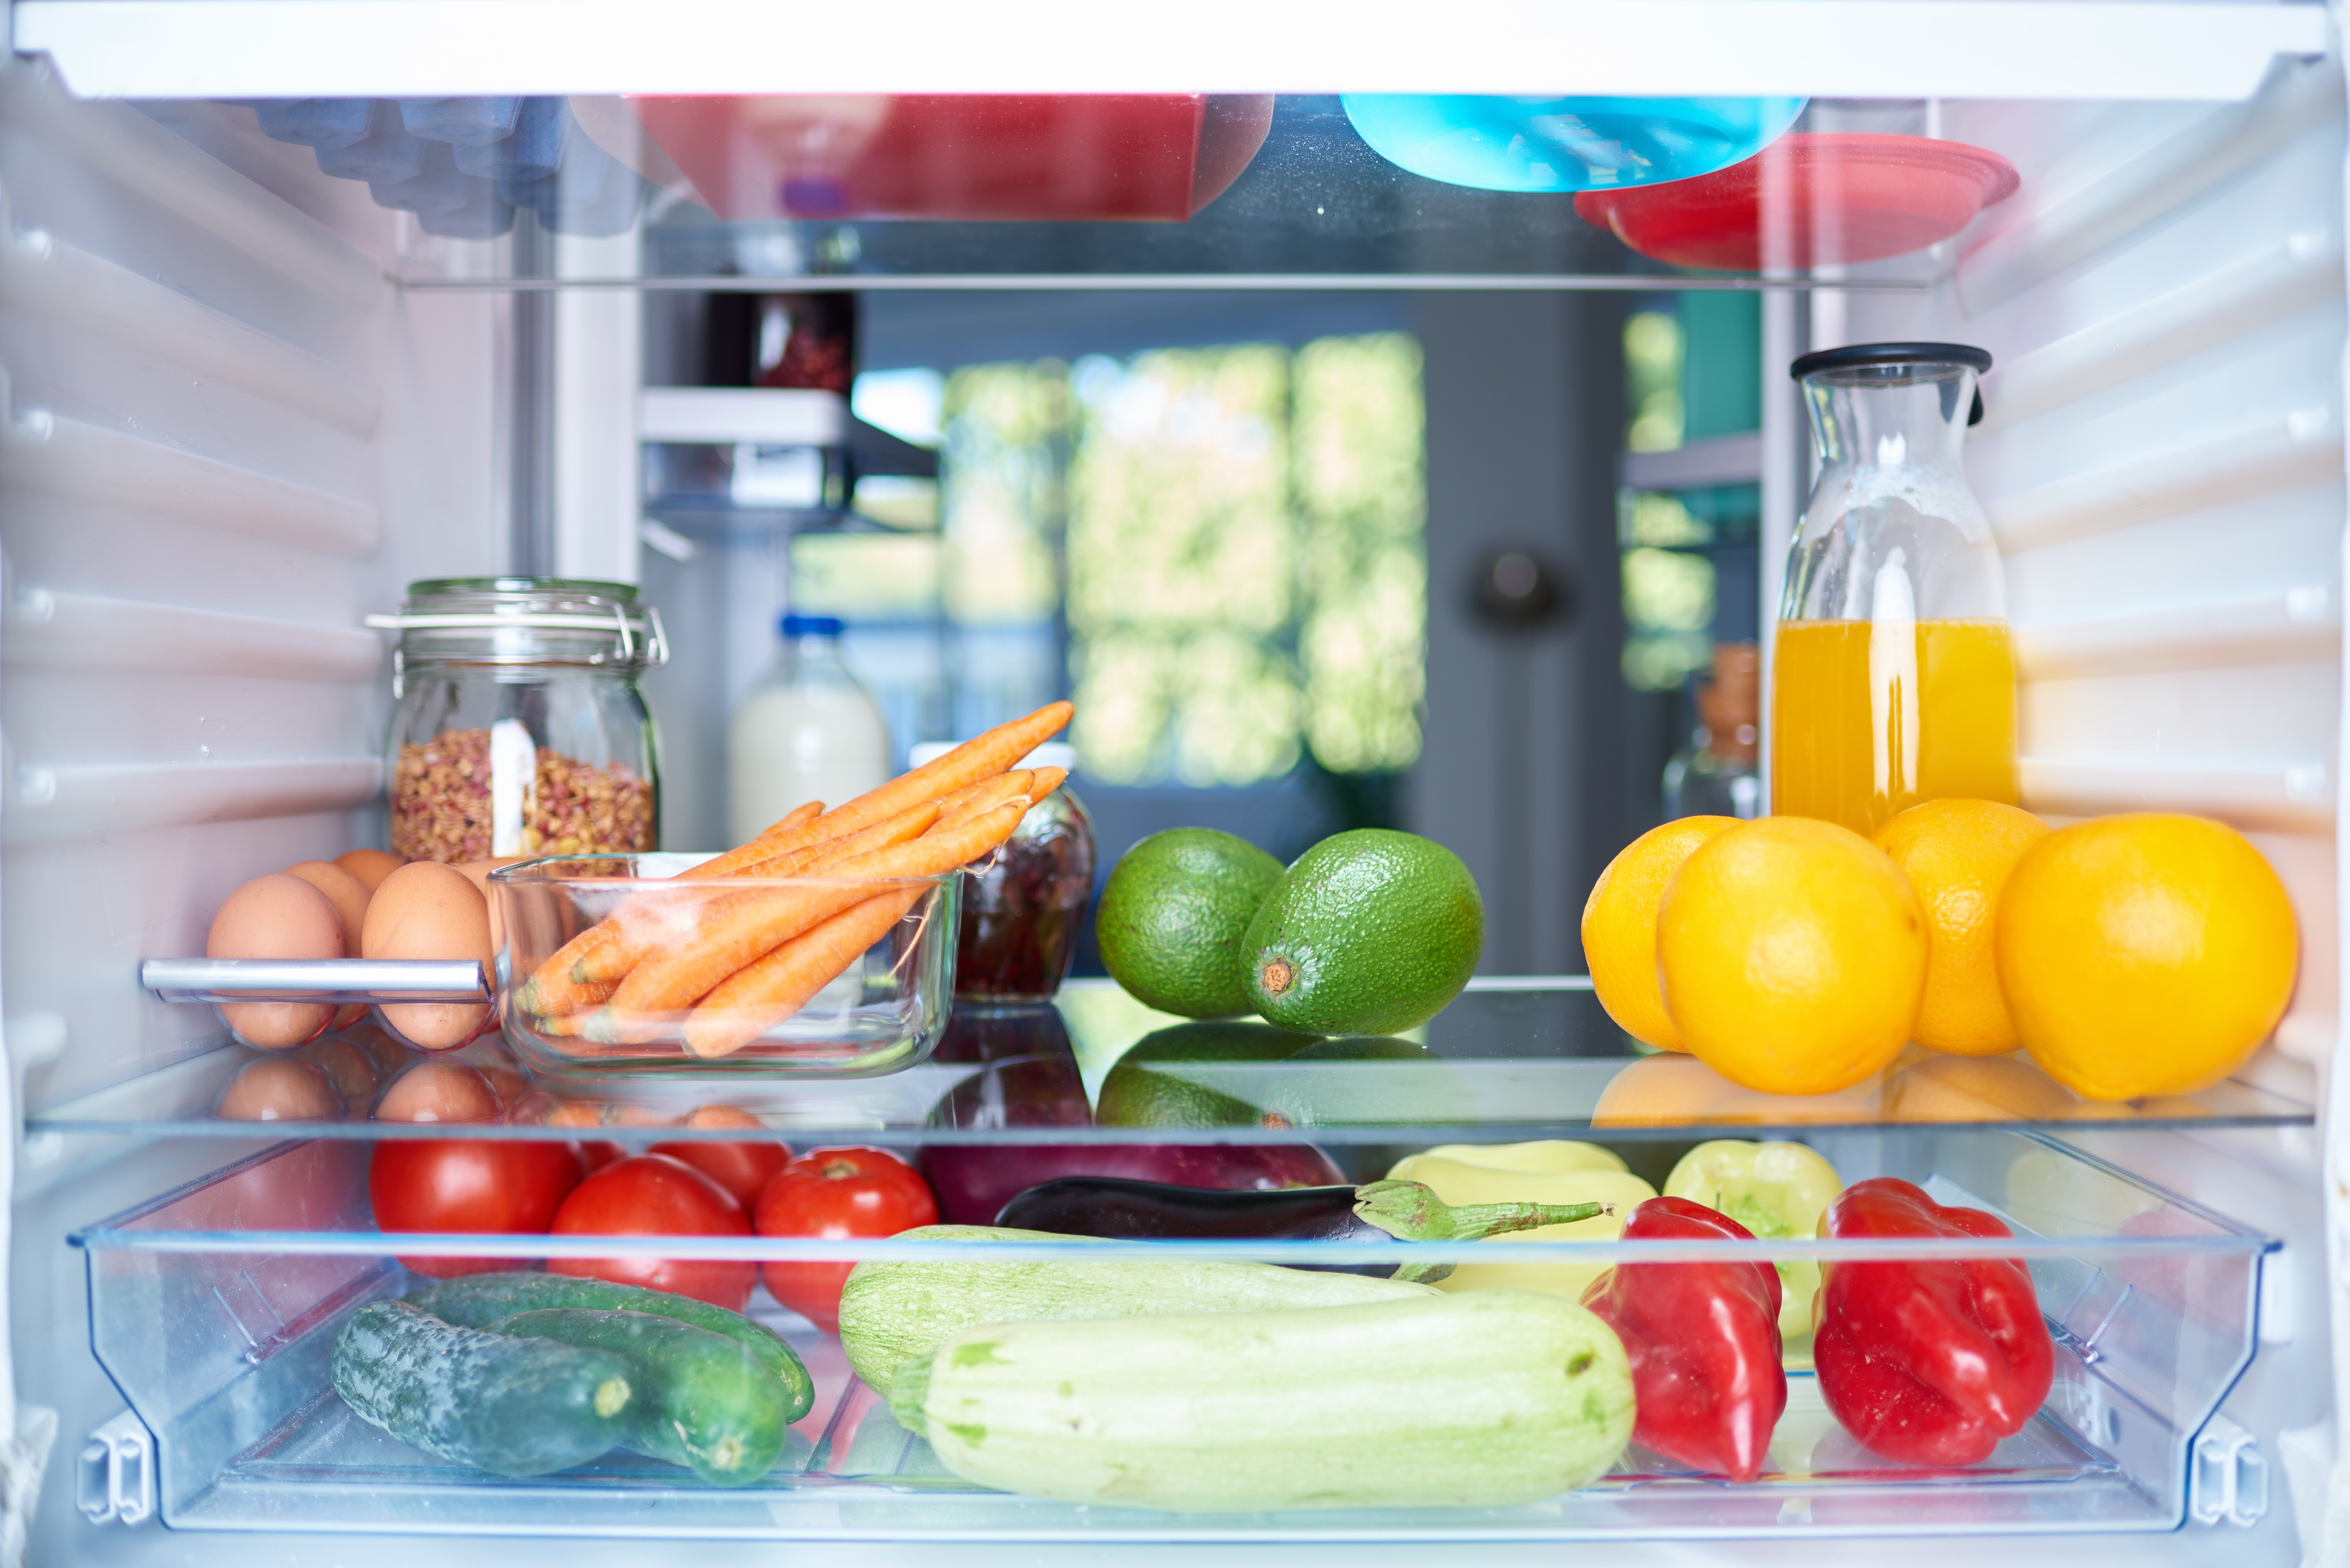 Keep Your Food Safe During Power Outages